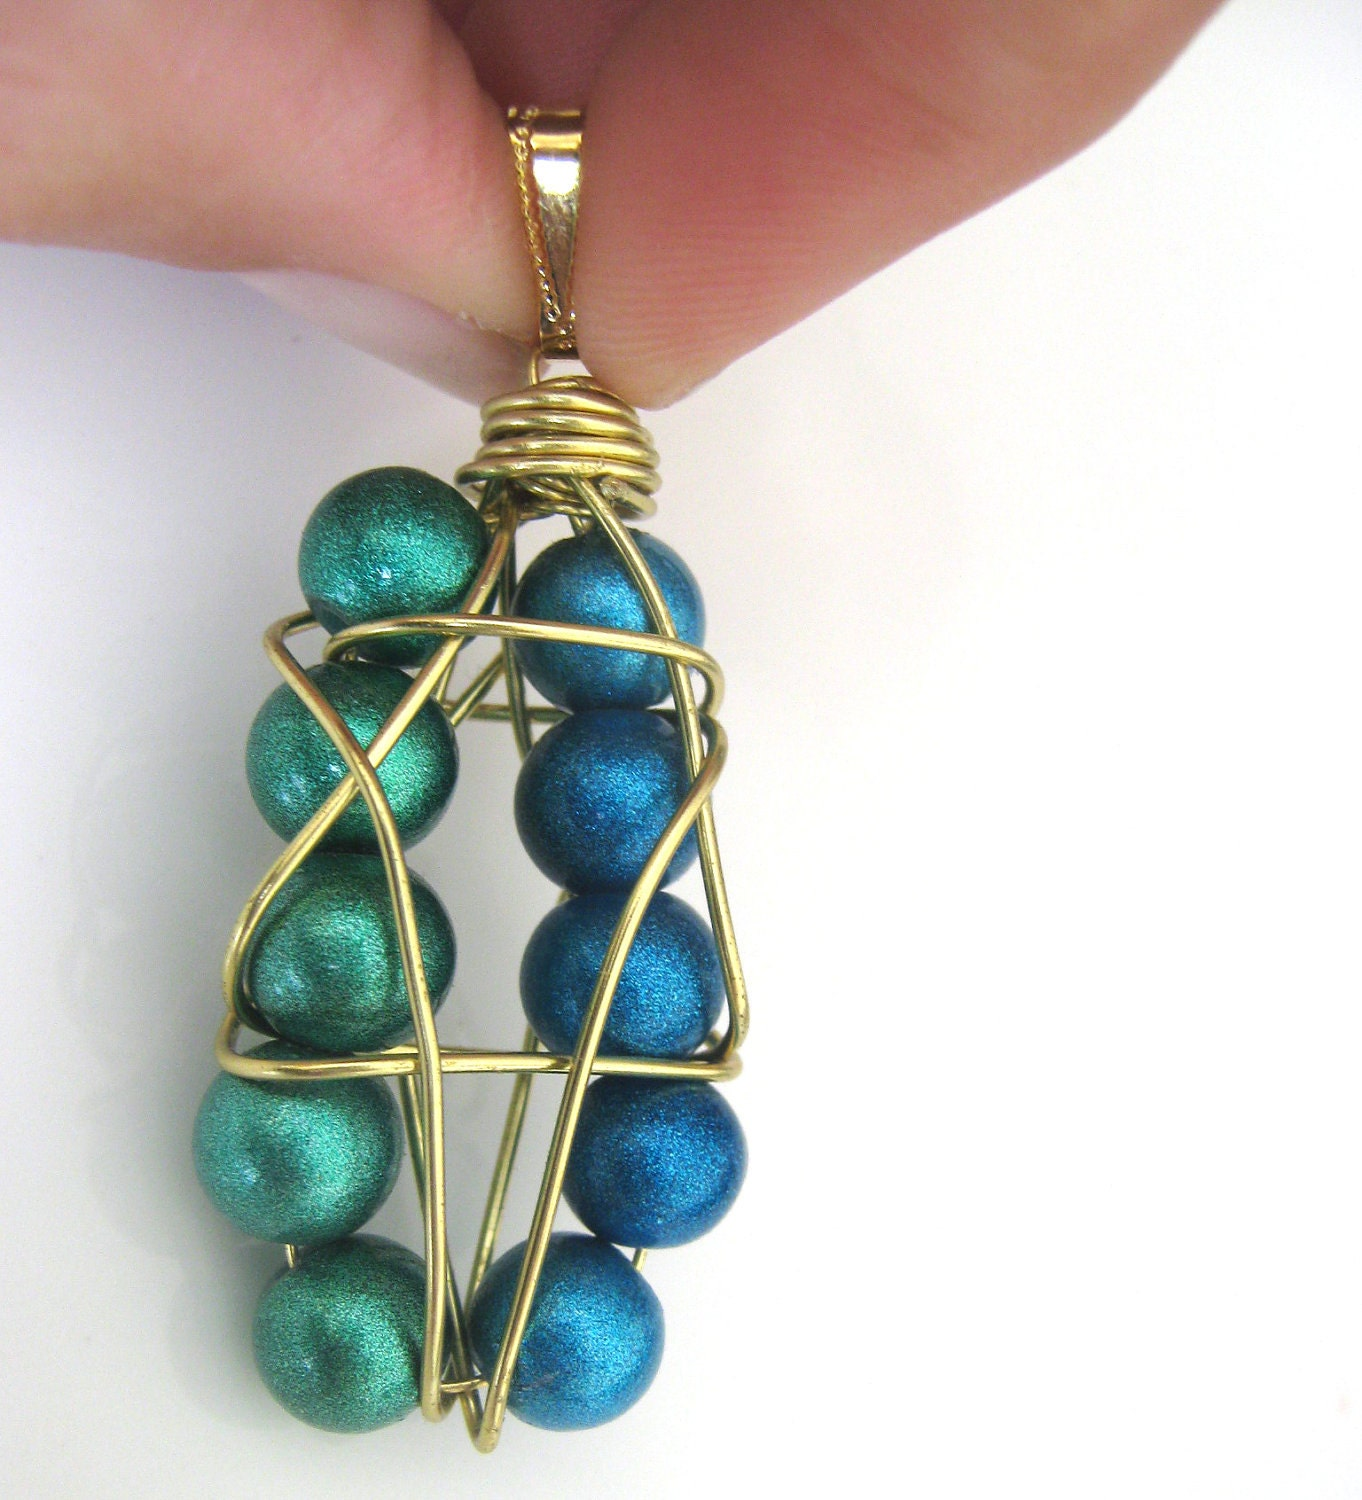 Star of David Pendant - wire wrapped blue and green glass